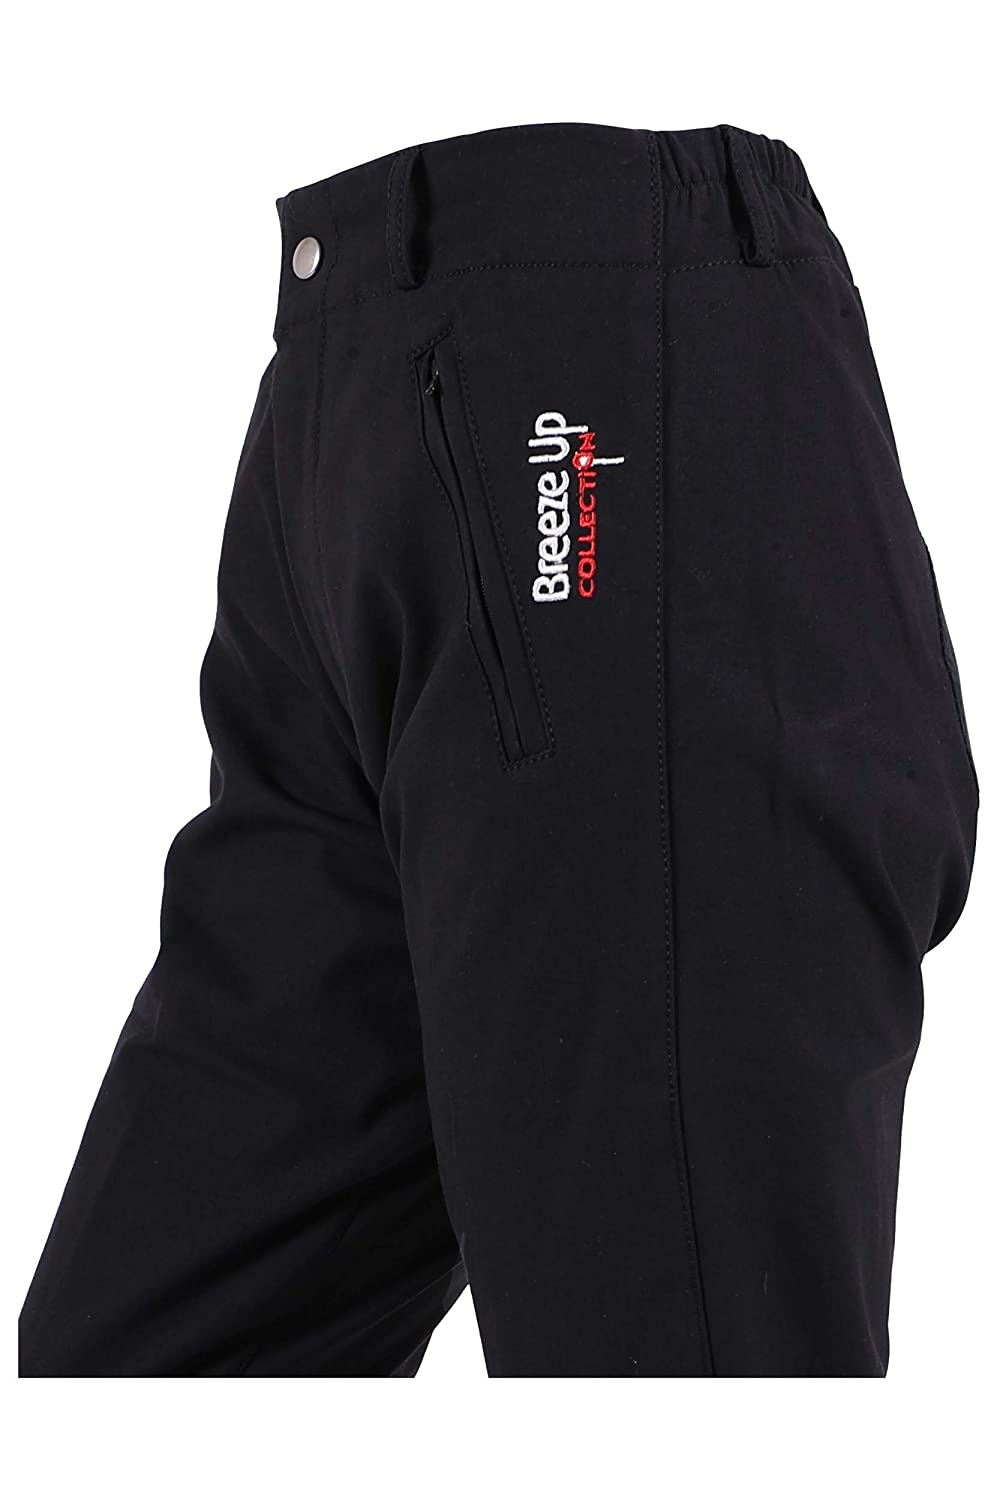 Breeze Up Collection exercise-breeches-black-black